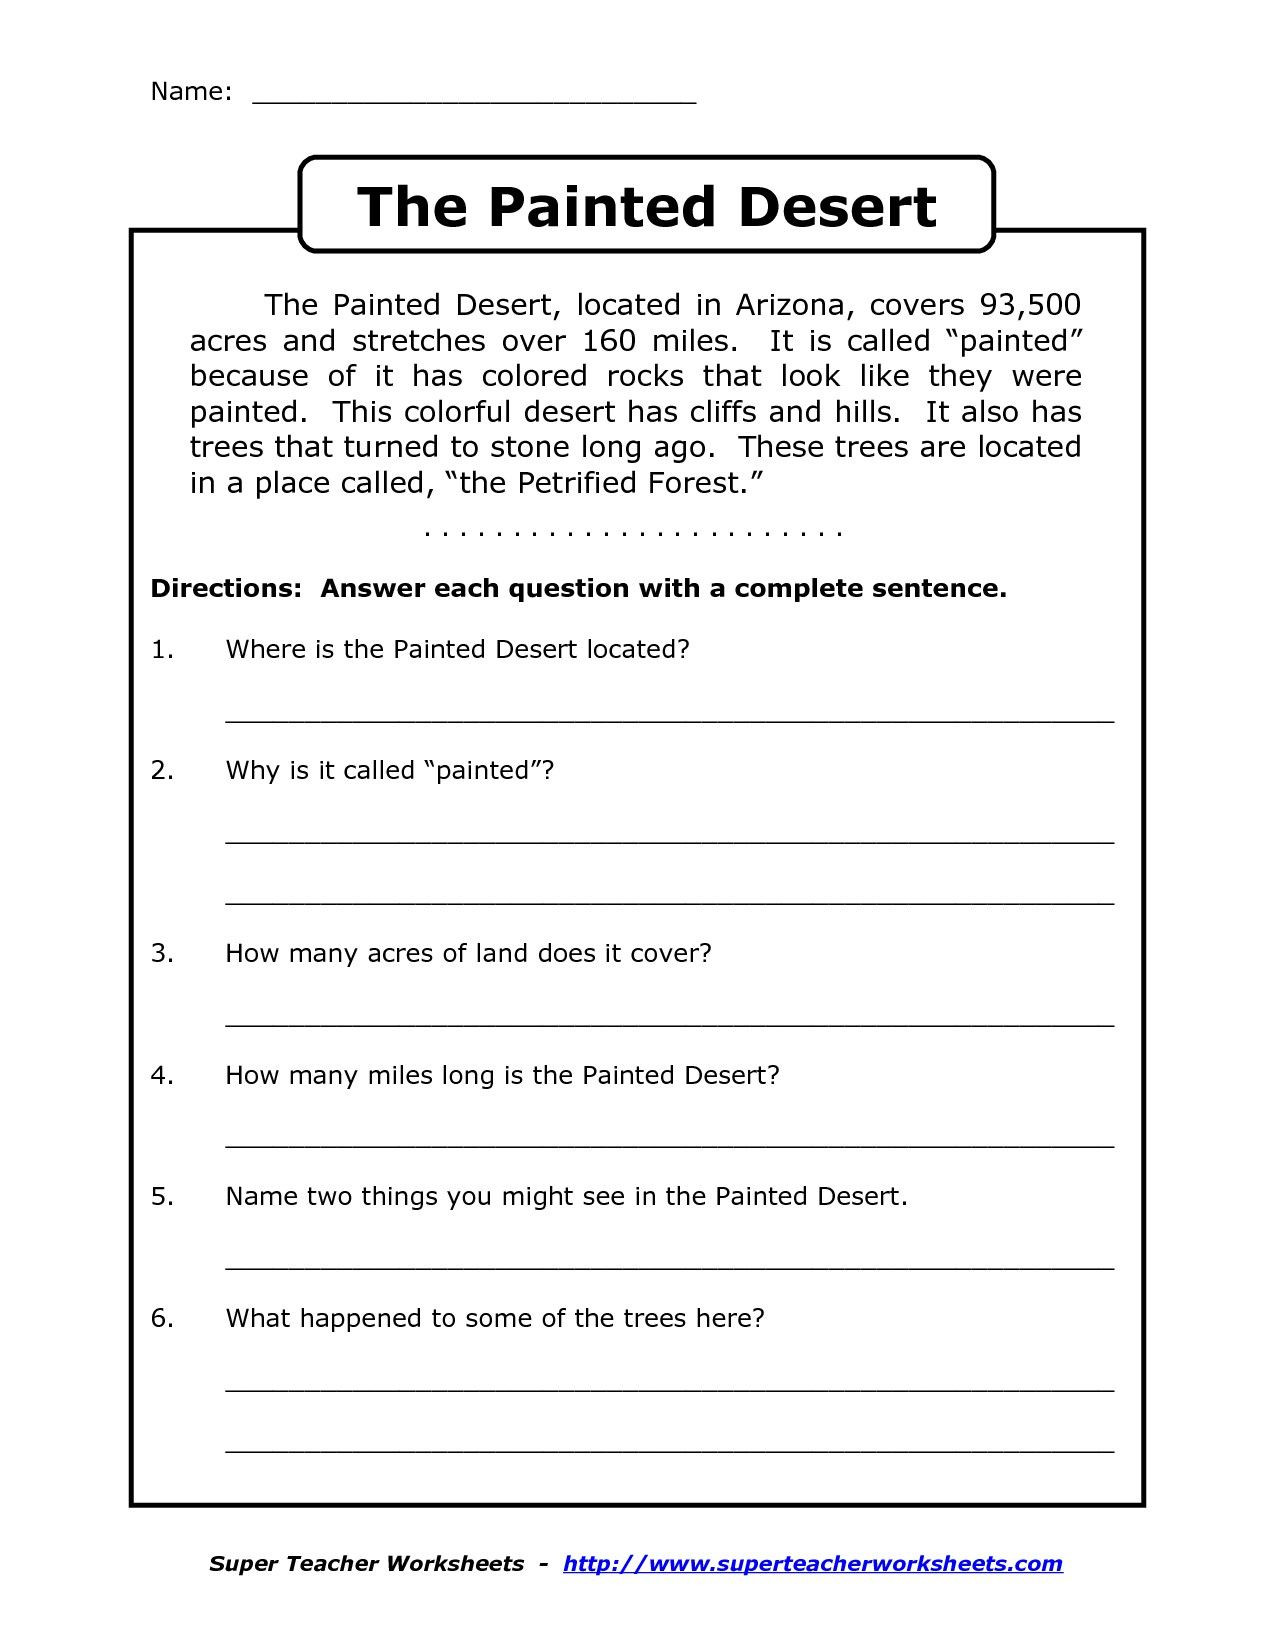 5th Grade Main Idea Worksheets Prehension Worksheet for 1st Grade Y2 P3 the Painted